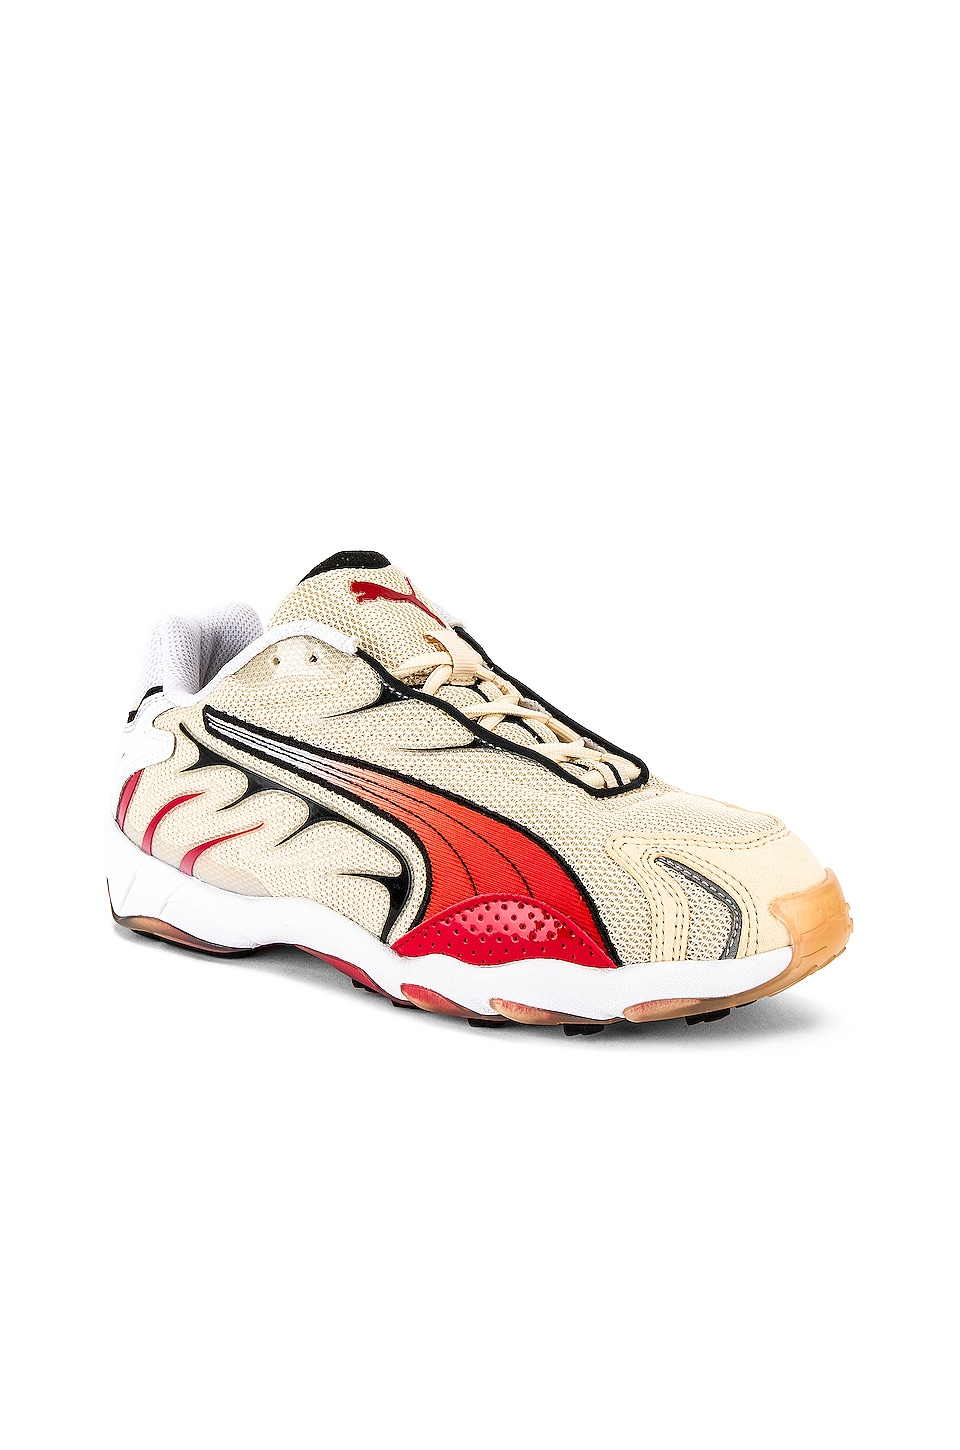 Puma Select Inhale en Summer Melon High Risk Red